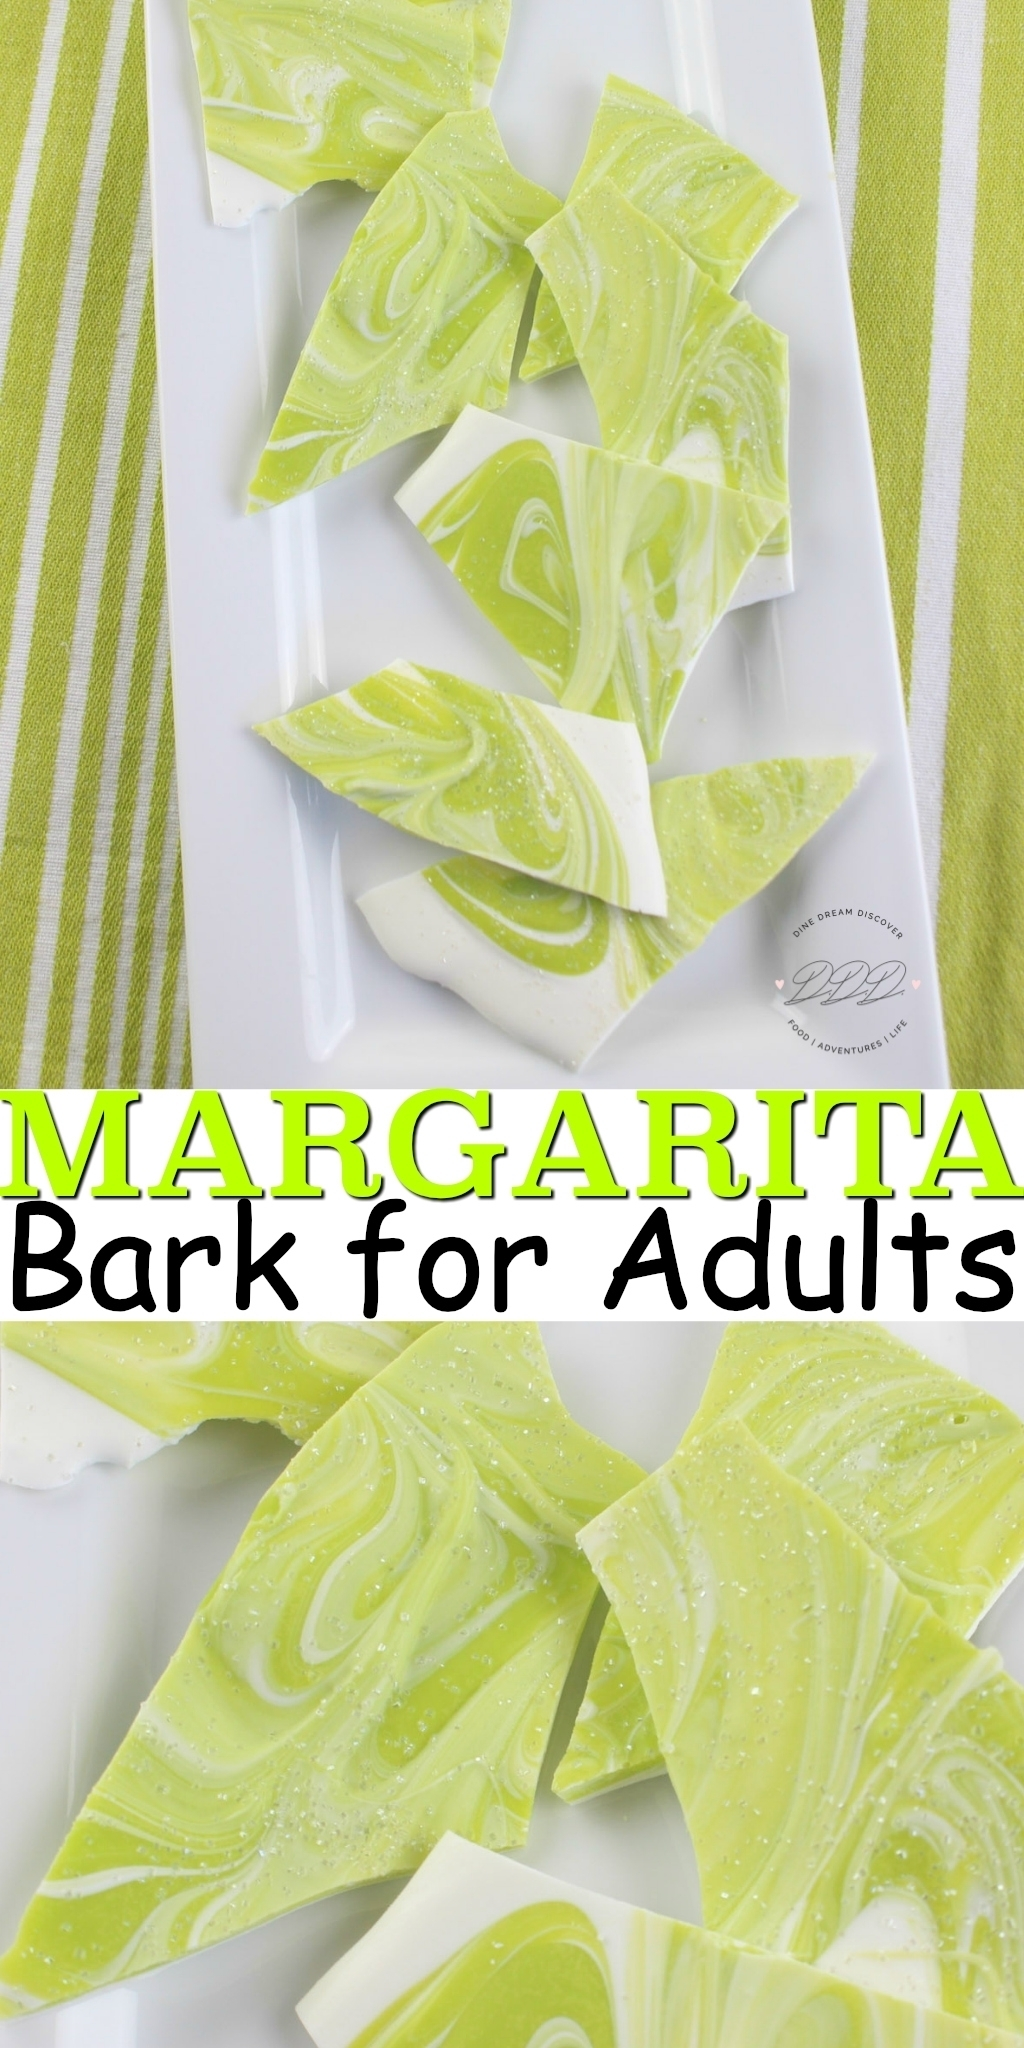 The mouthwatering Margarita Bark recipe is the perfect tequila candy adult treat for National Margarita Day that can also be used for St. Patrick's Day.